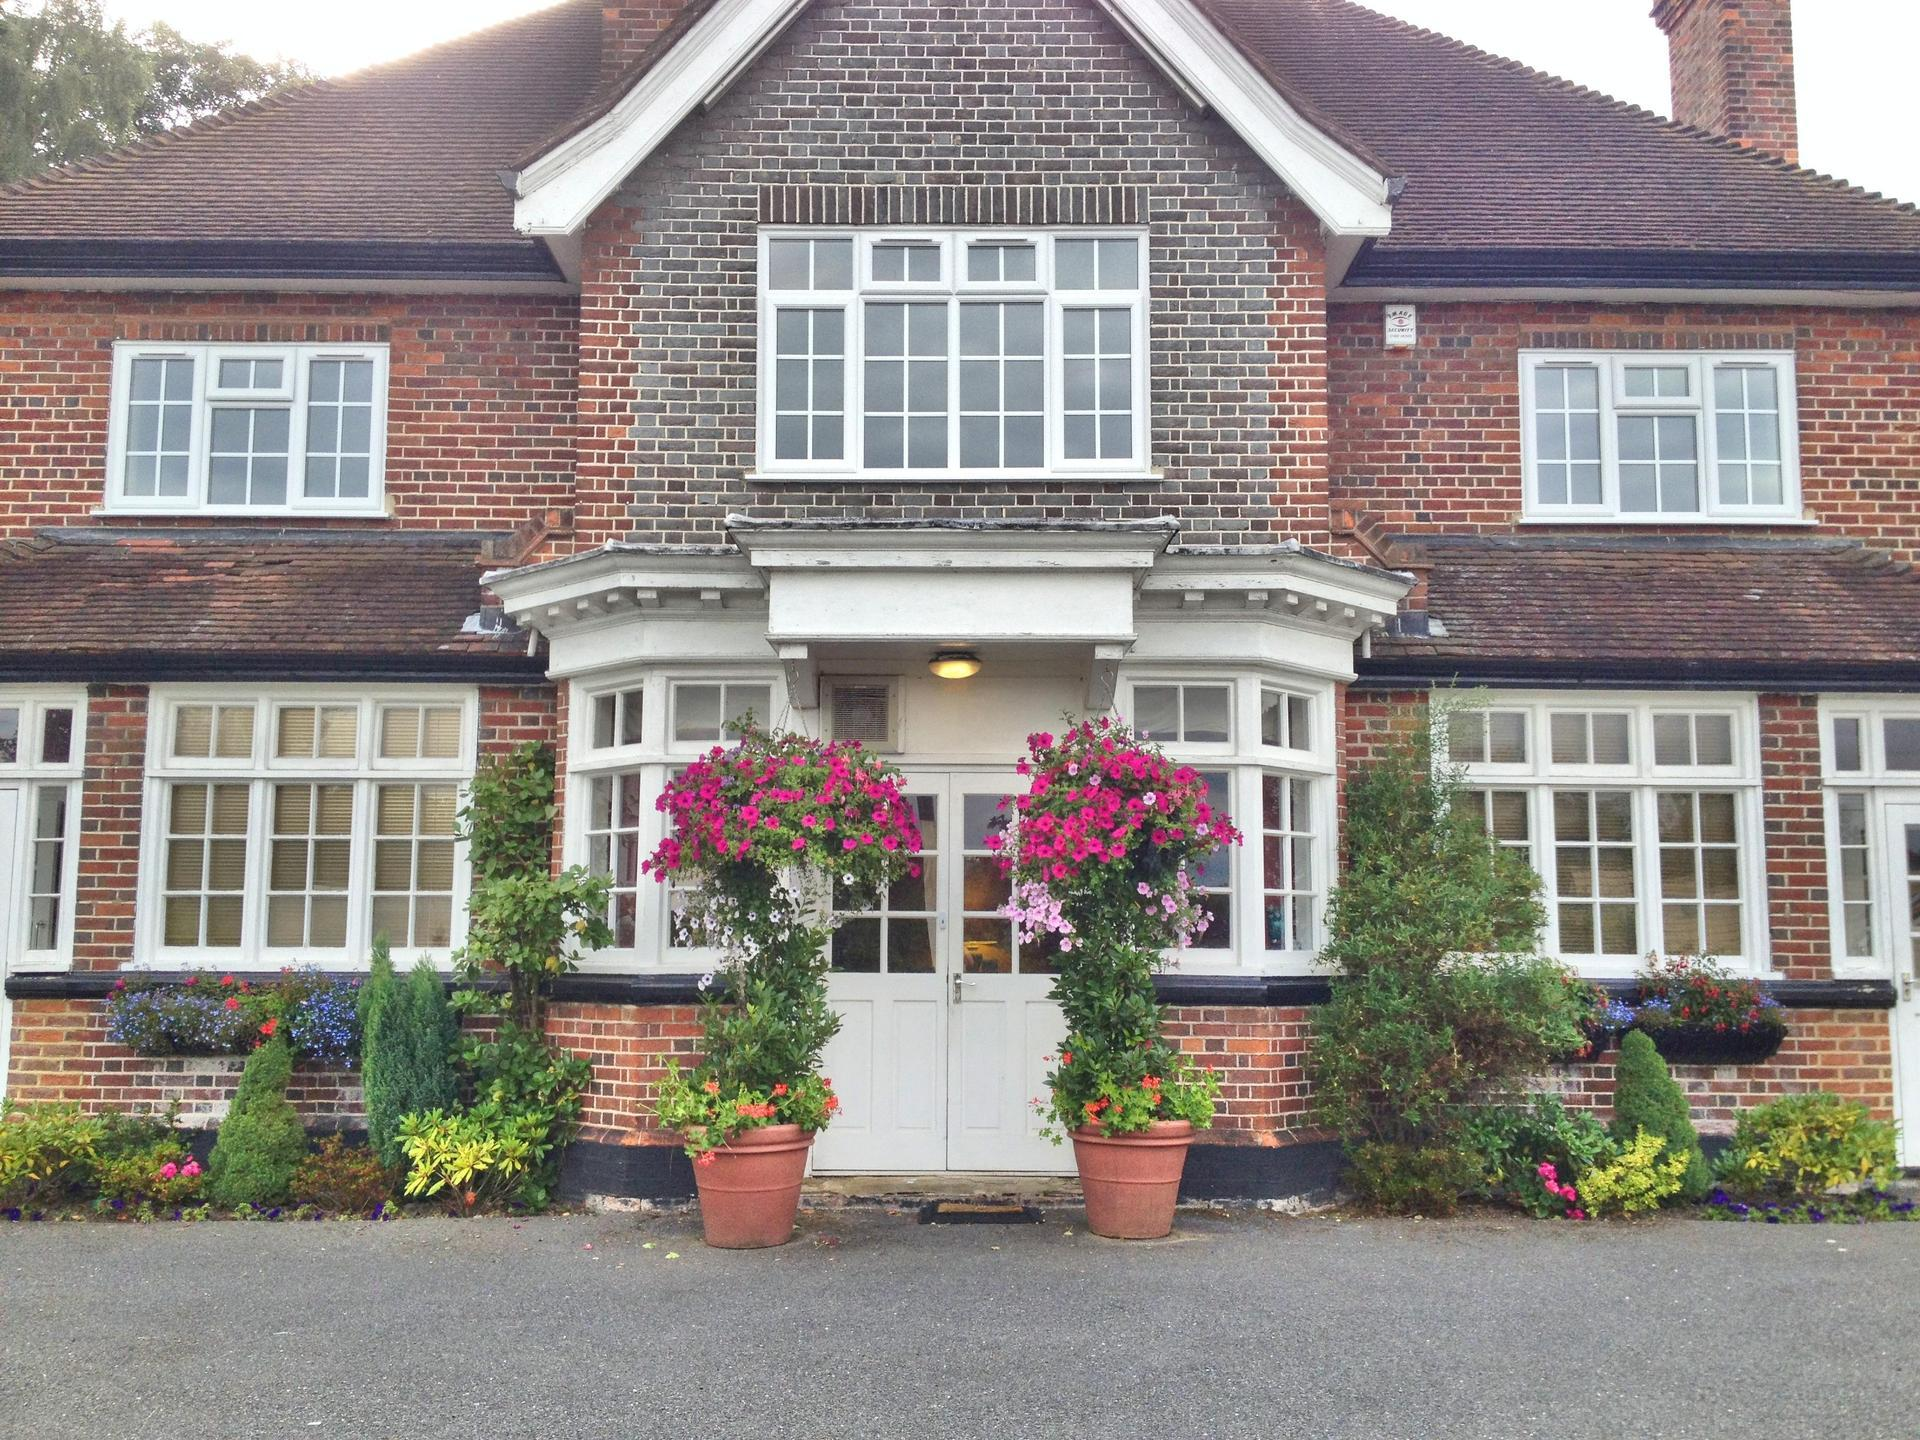 Bed And Breakfast Surrey Hotels In Greater London Hotels And B Andbs